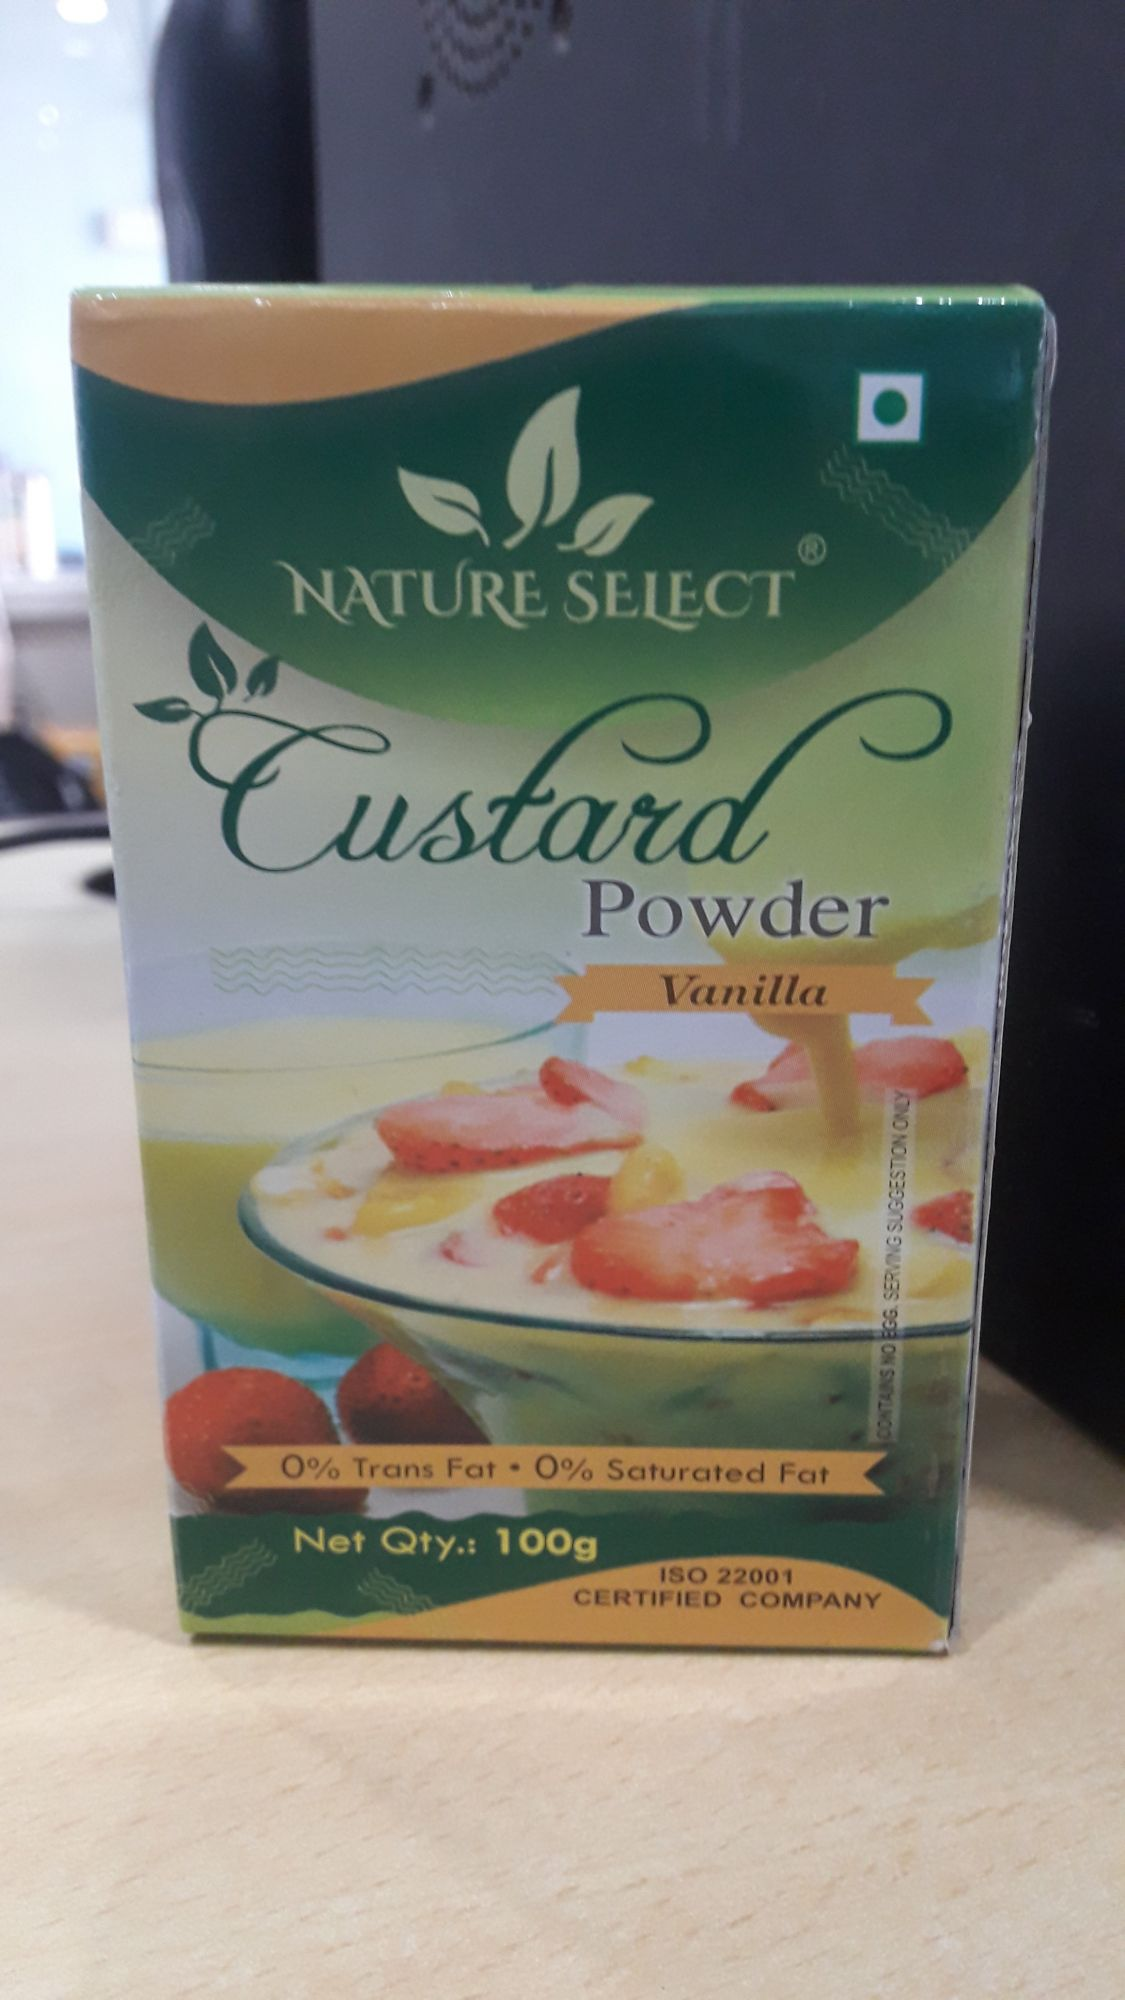 Nature Select Custard Powder Vanilla 100g MRP-37/- (4 PCS)